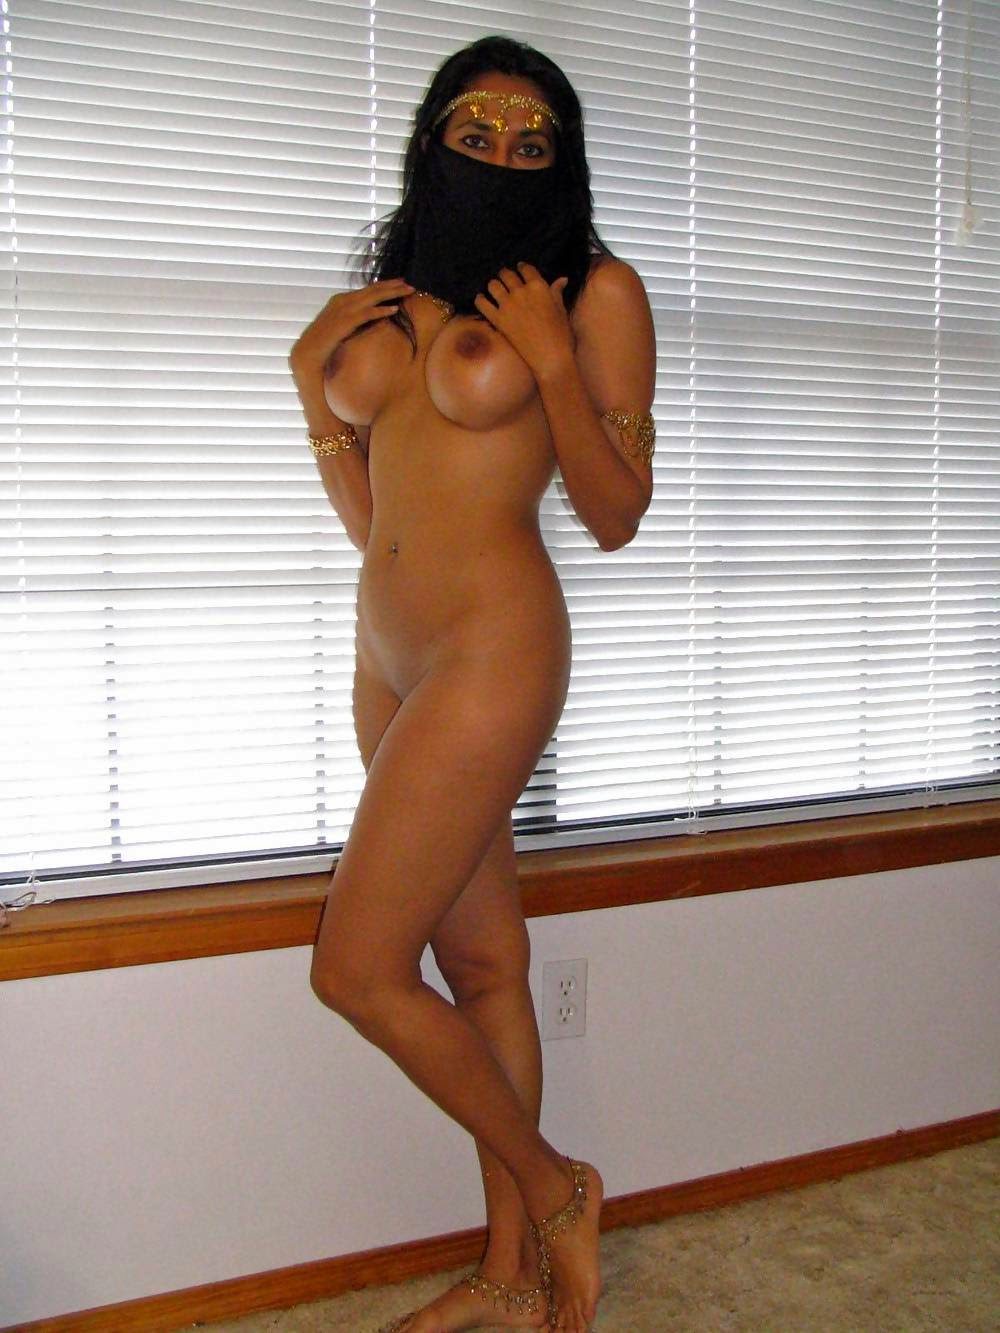 Possible Hot naked arab girl amusing